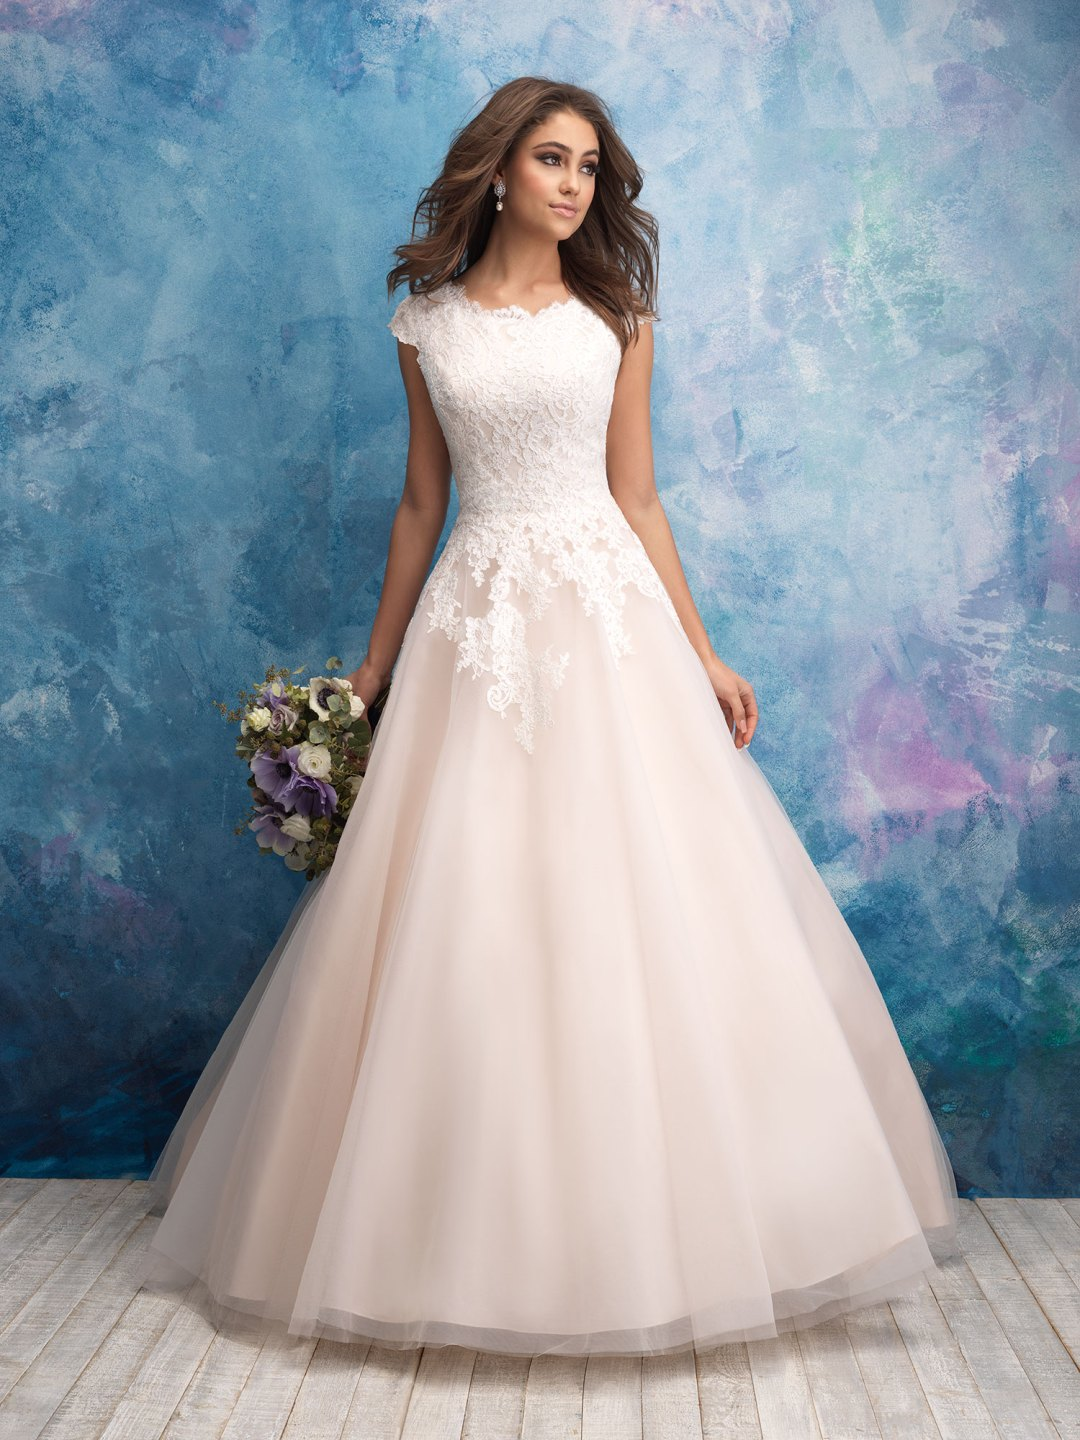 25 Modest Ball Gown Wedding Dresses - 12